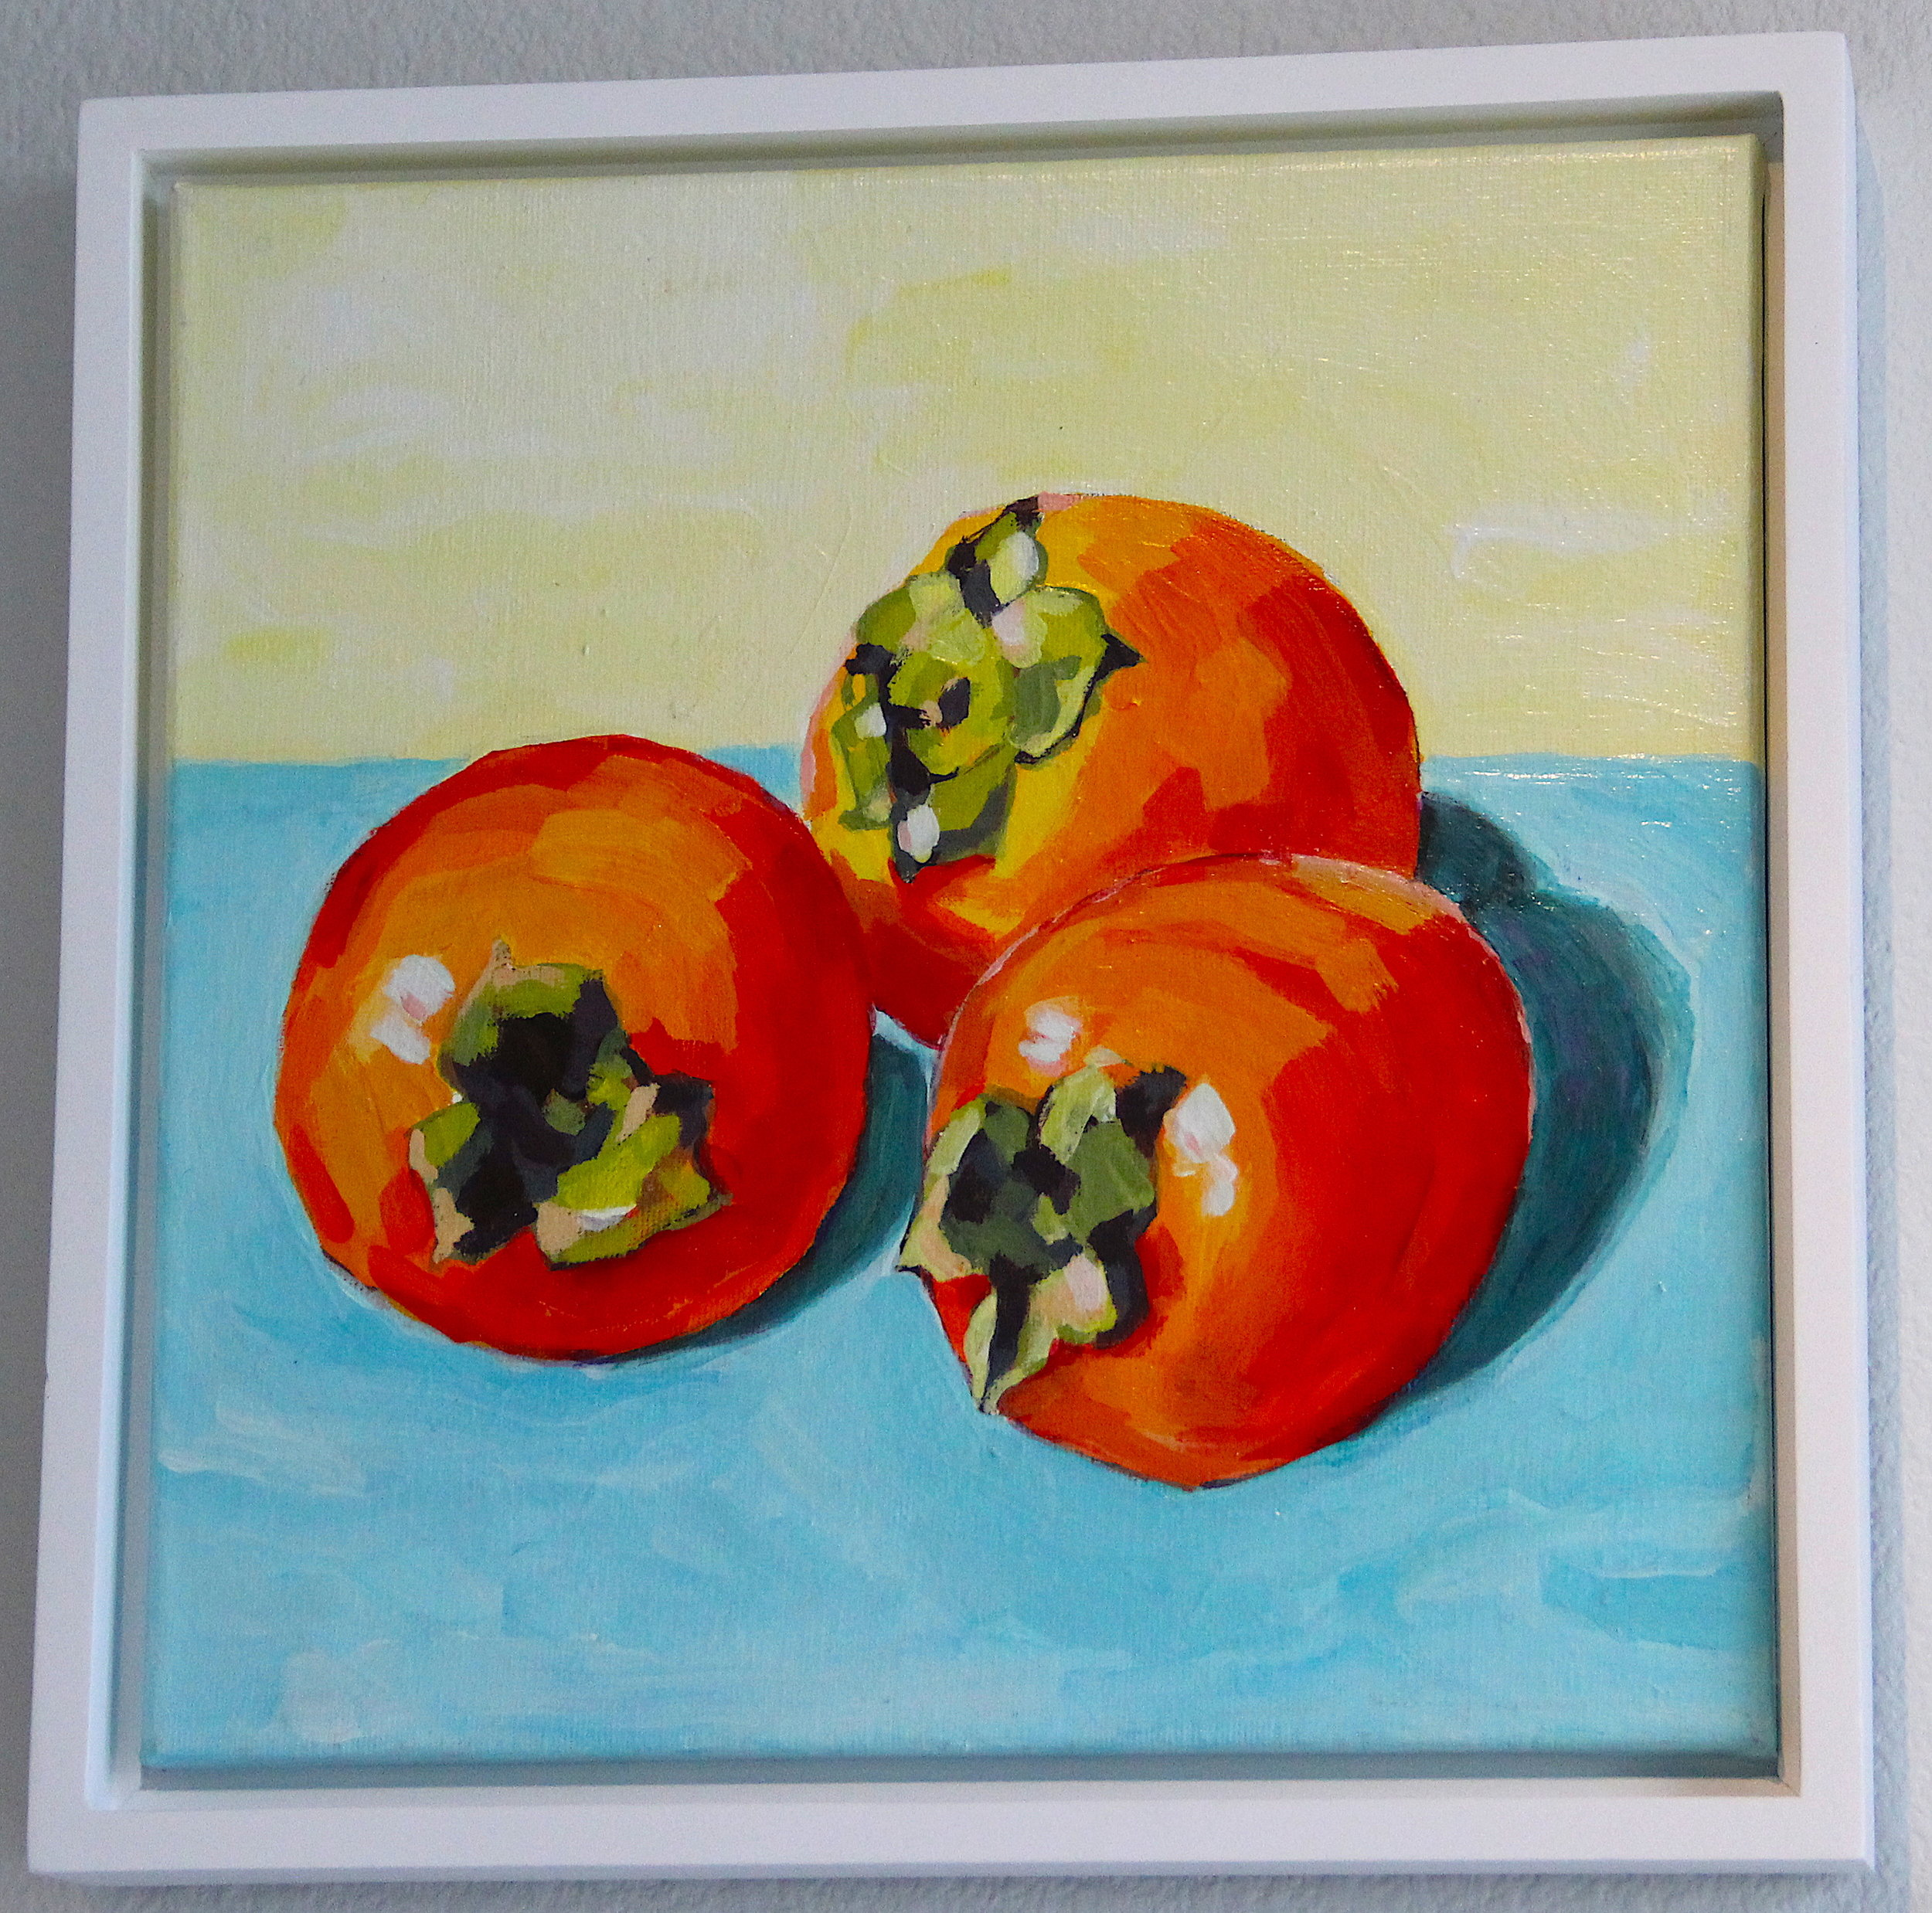 NANCY HIELSCHER, PERSIMMONS 3